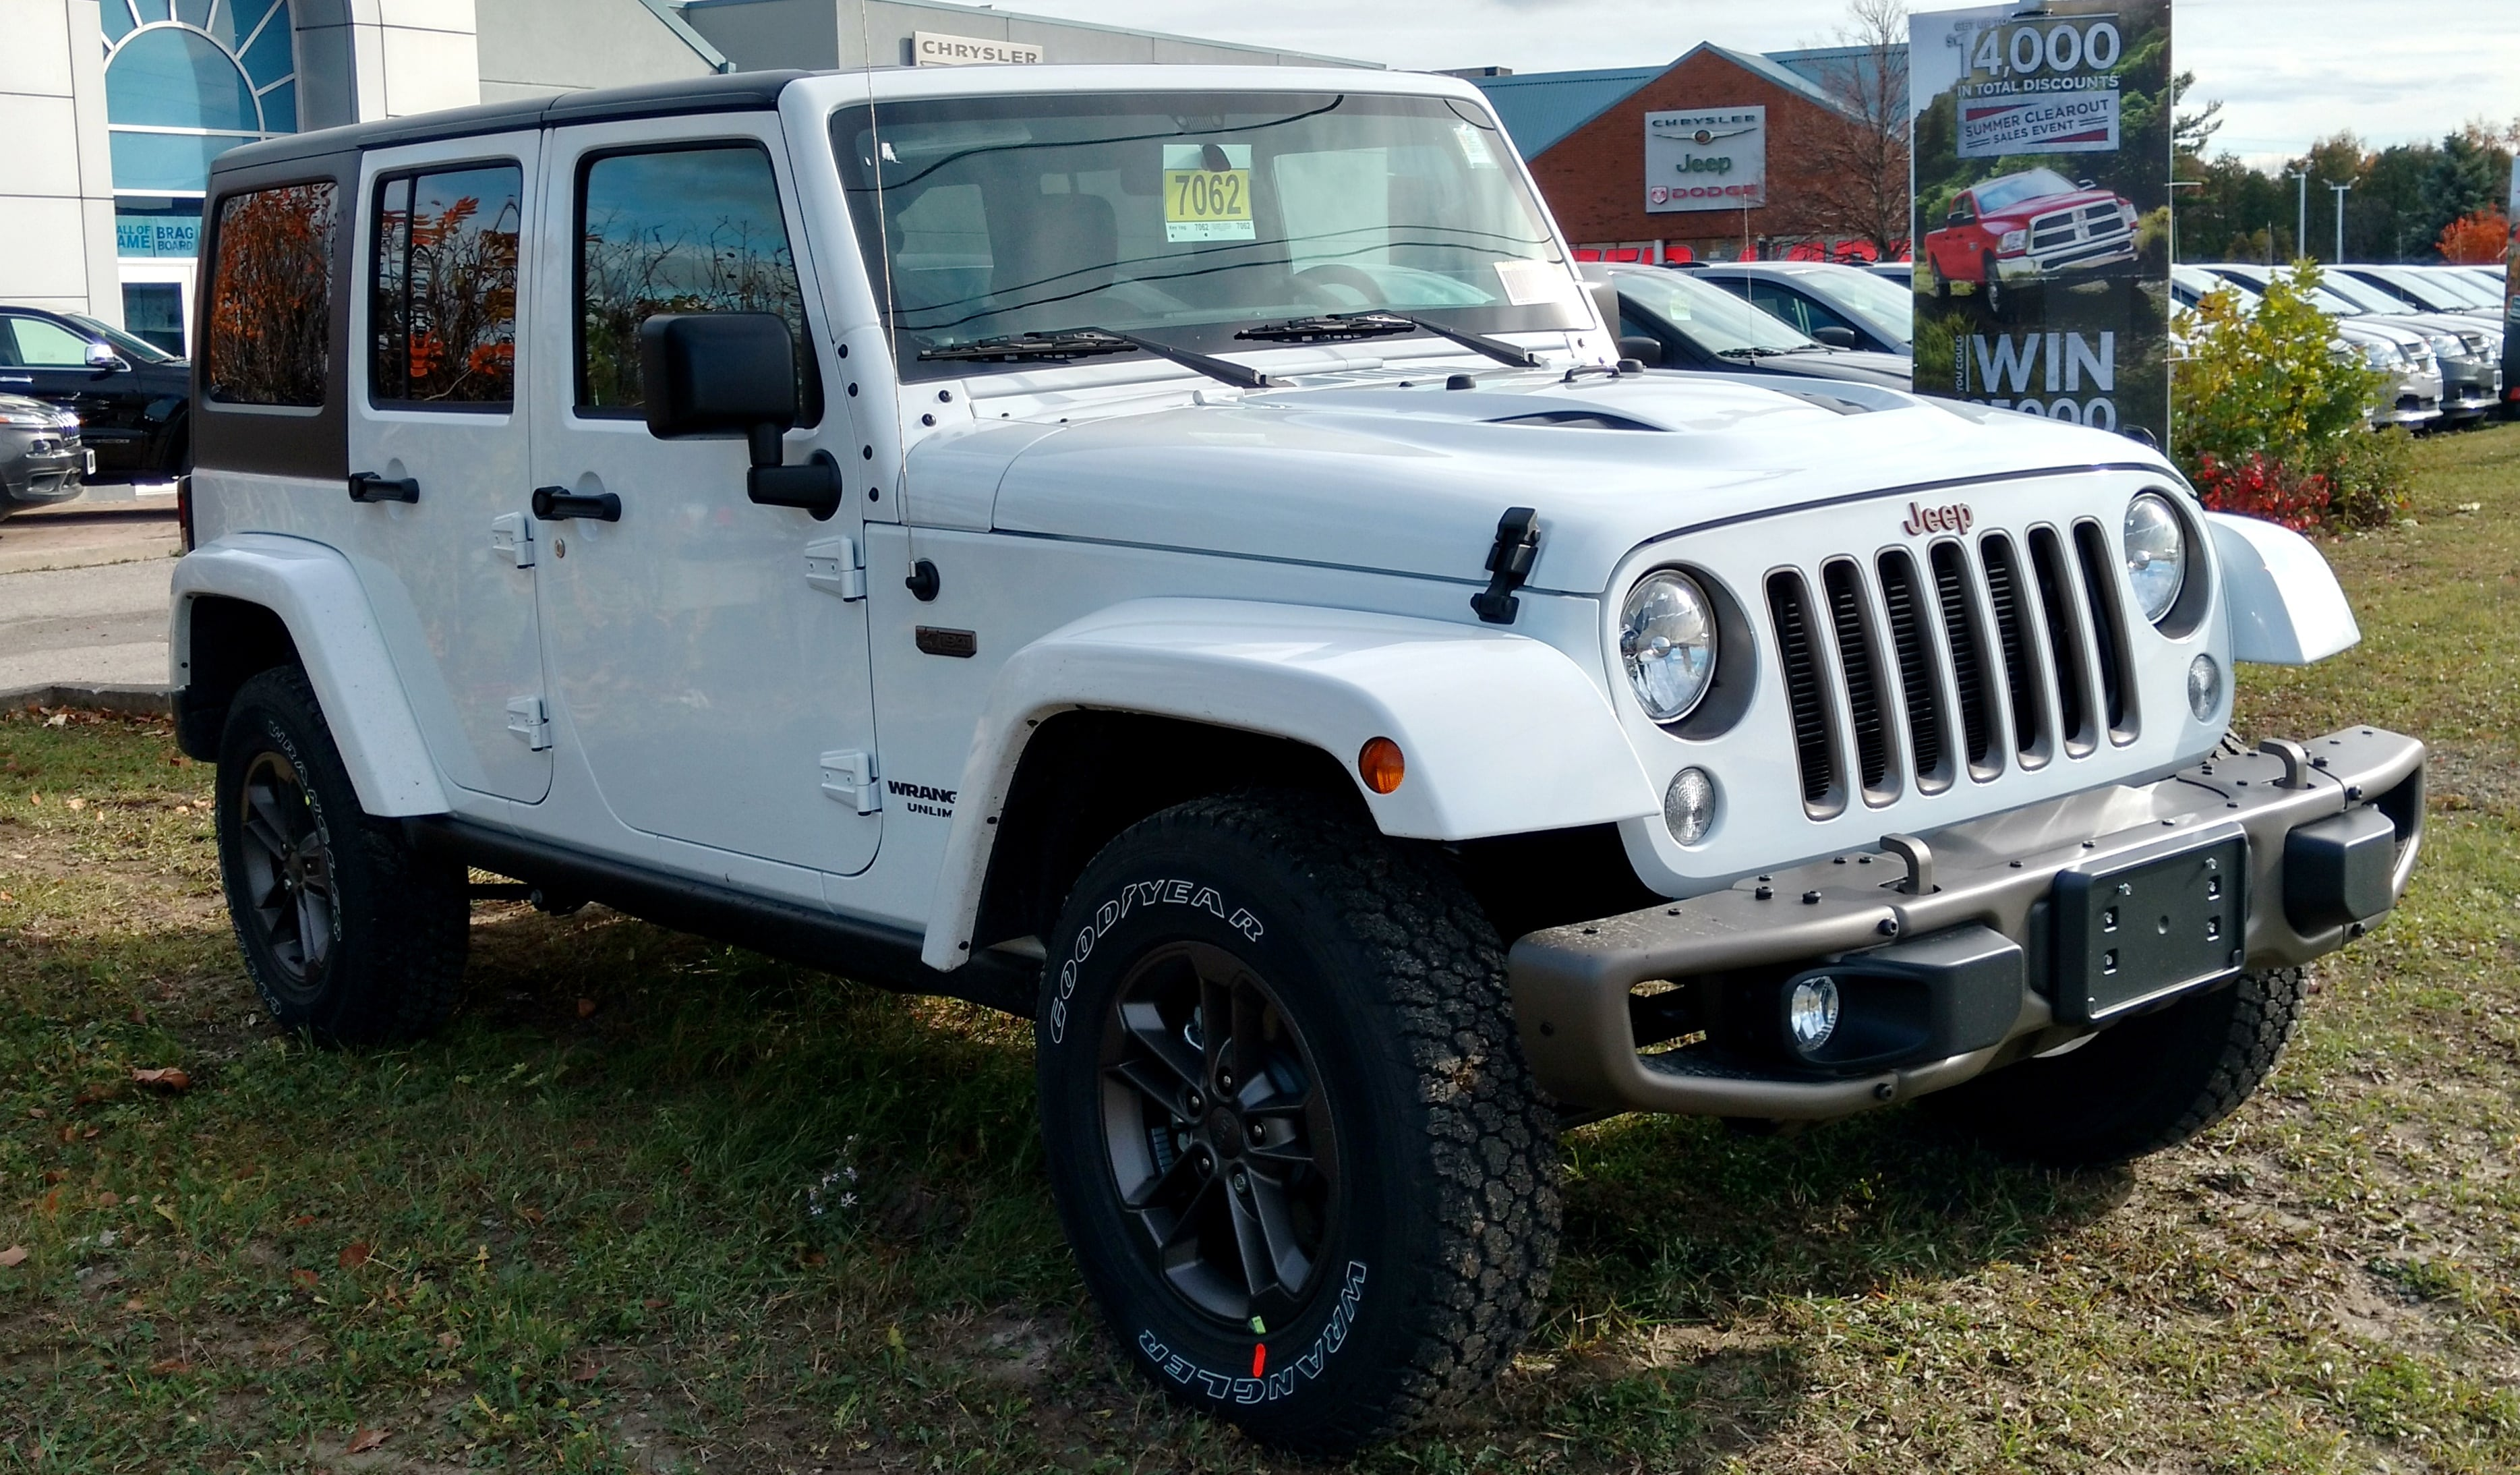 sale owned htm unlimited emerling dodge jeep rubicon springville chrysler featured pre vehicles in suv for wrangler ram